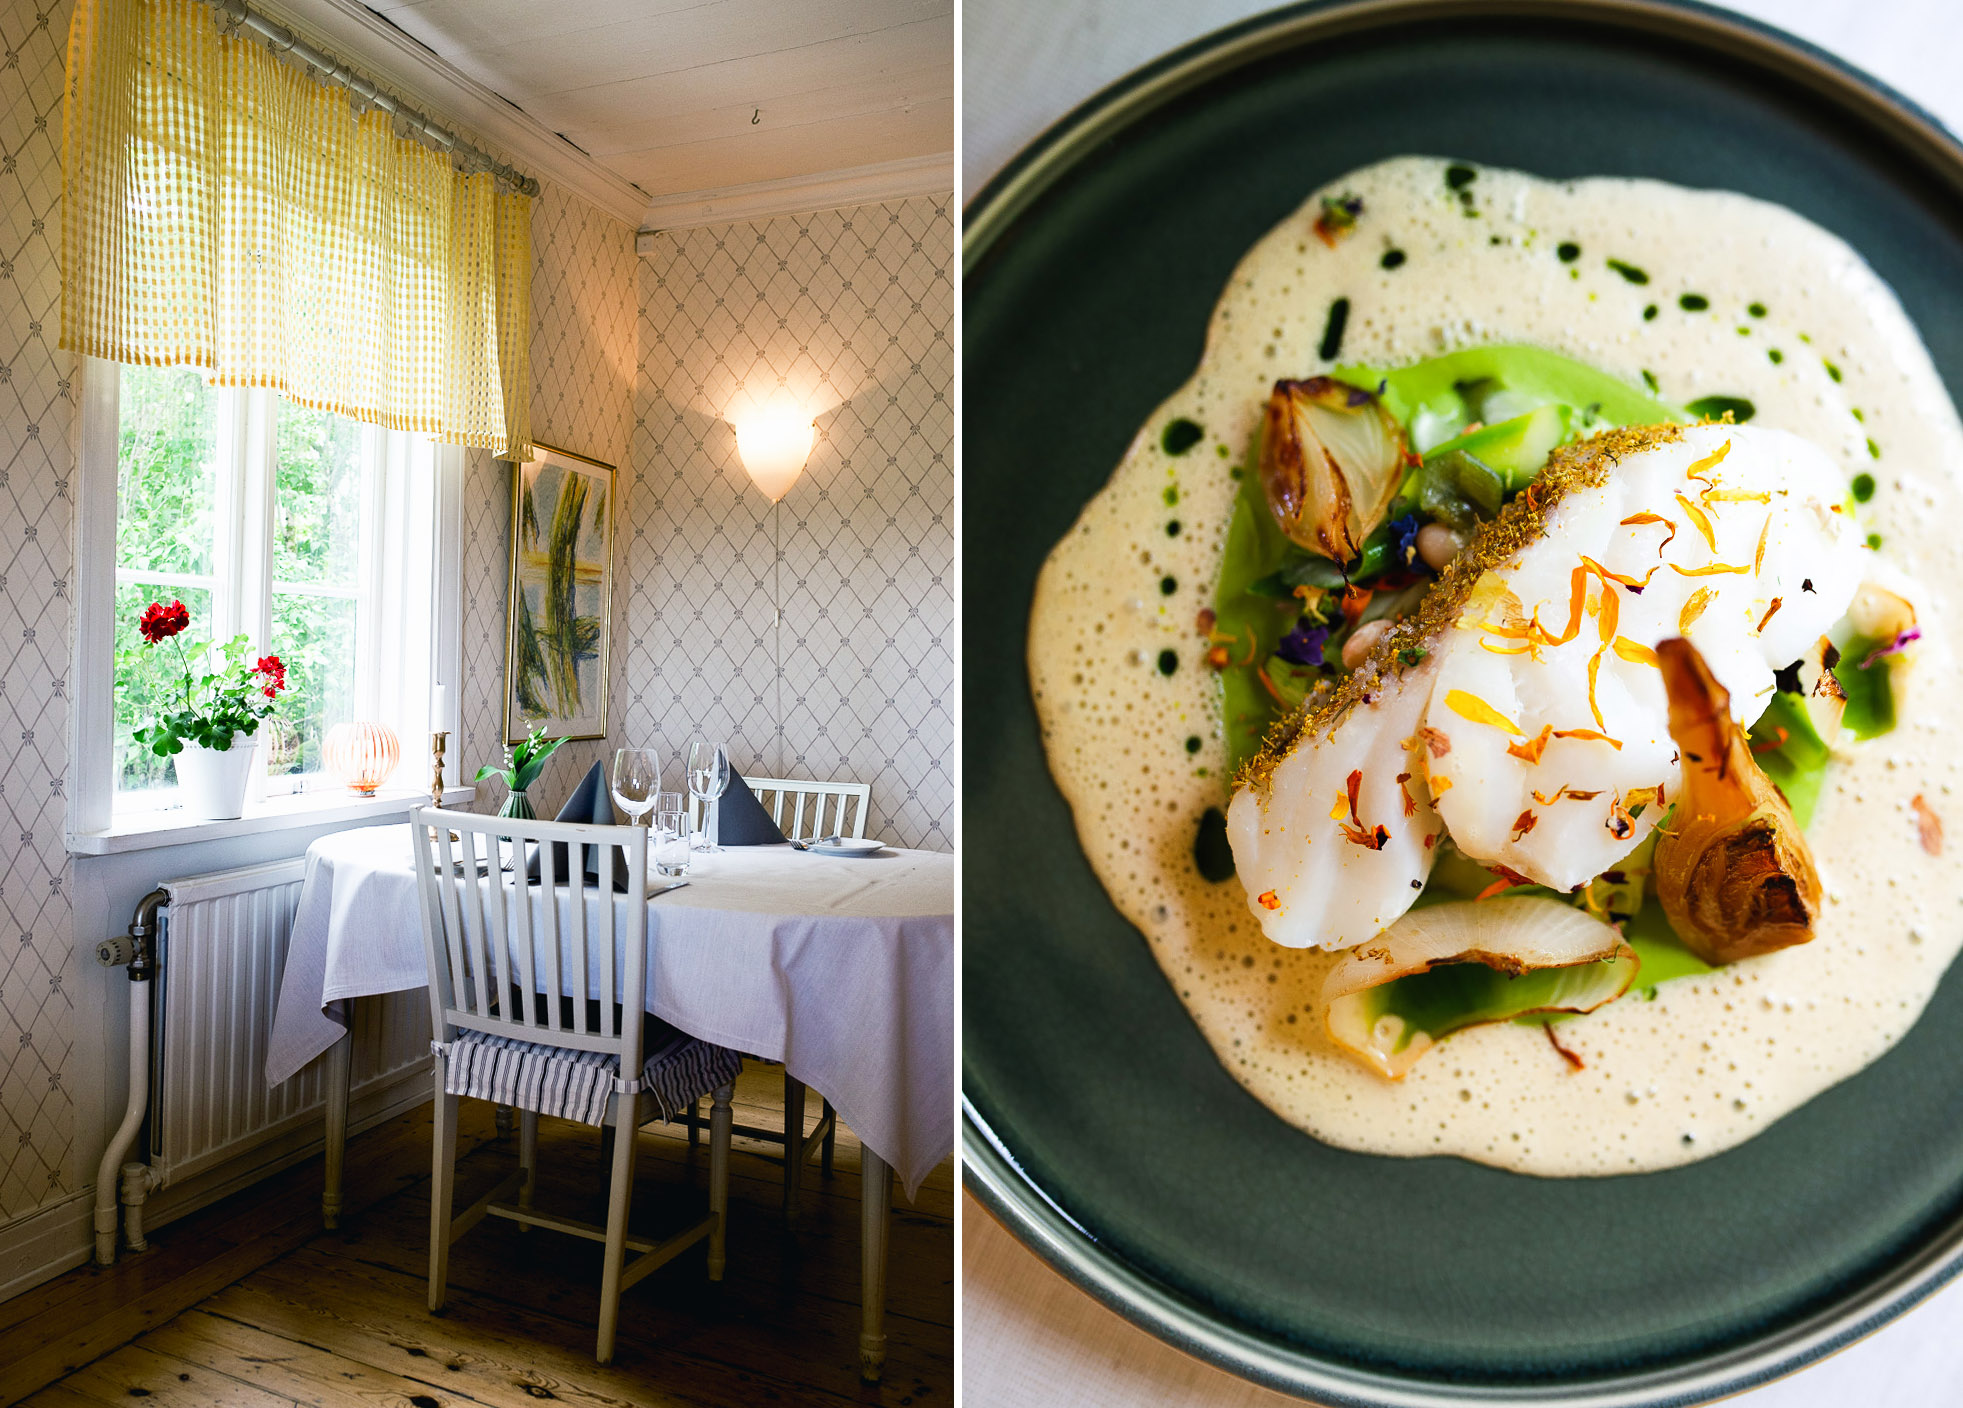 One of the highlights of my trip to Varmland: Ölme Prästgård Gästgiveri was a rectory from the late 18th century, turned guesthouse with high-quality food offerings. The restaurant is located near Karlstad in central-west Sweden